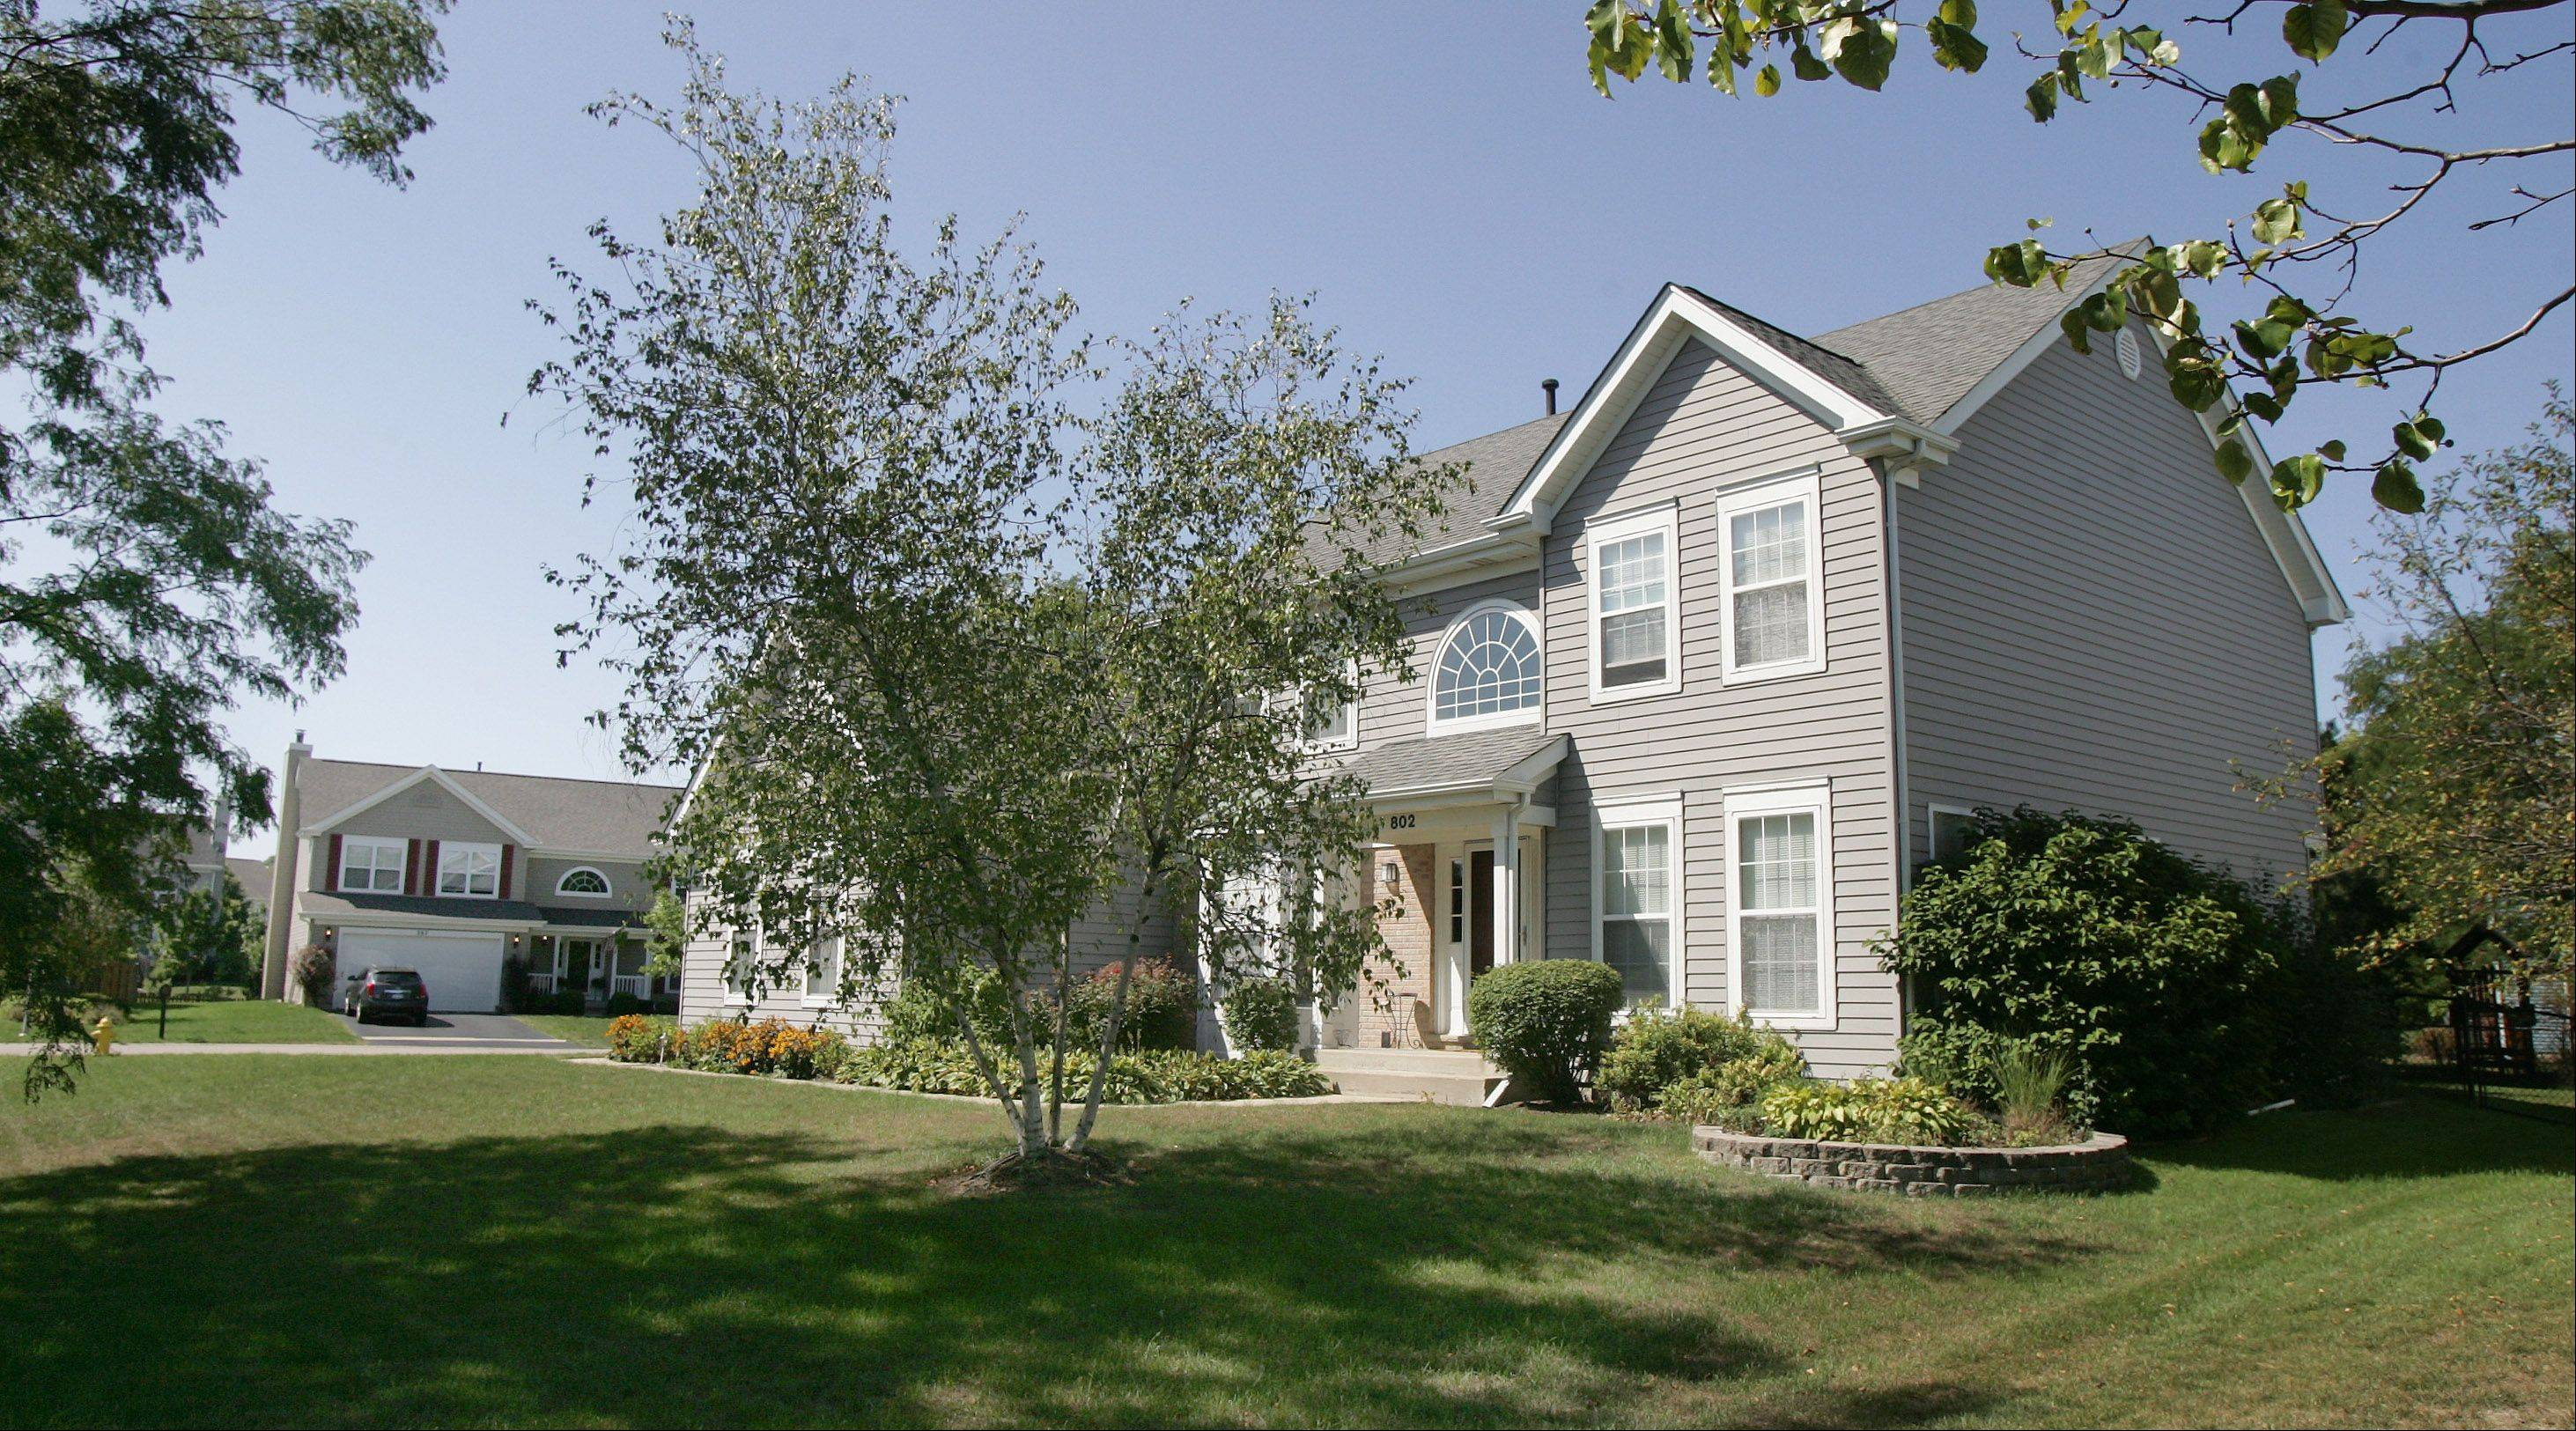 This home is typical of the larger houses found in Haryan Farms.